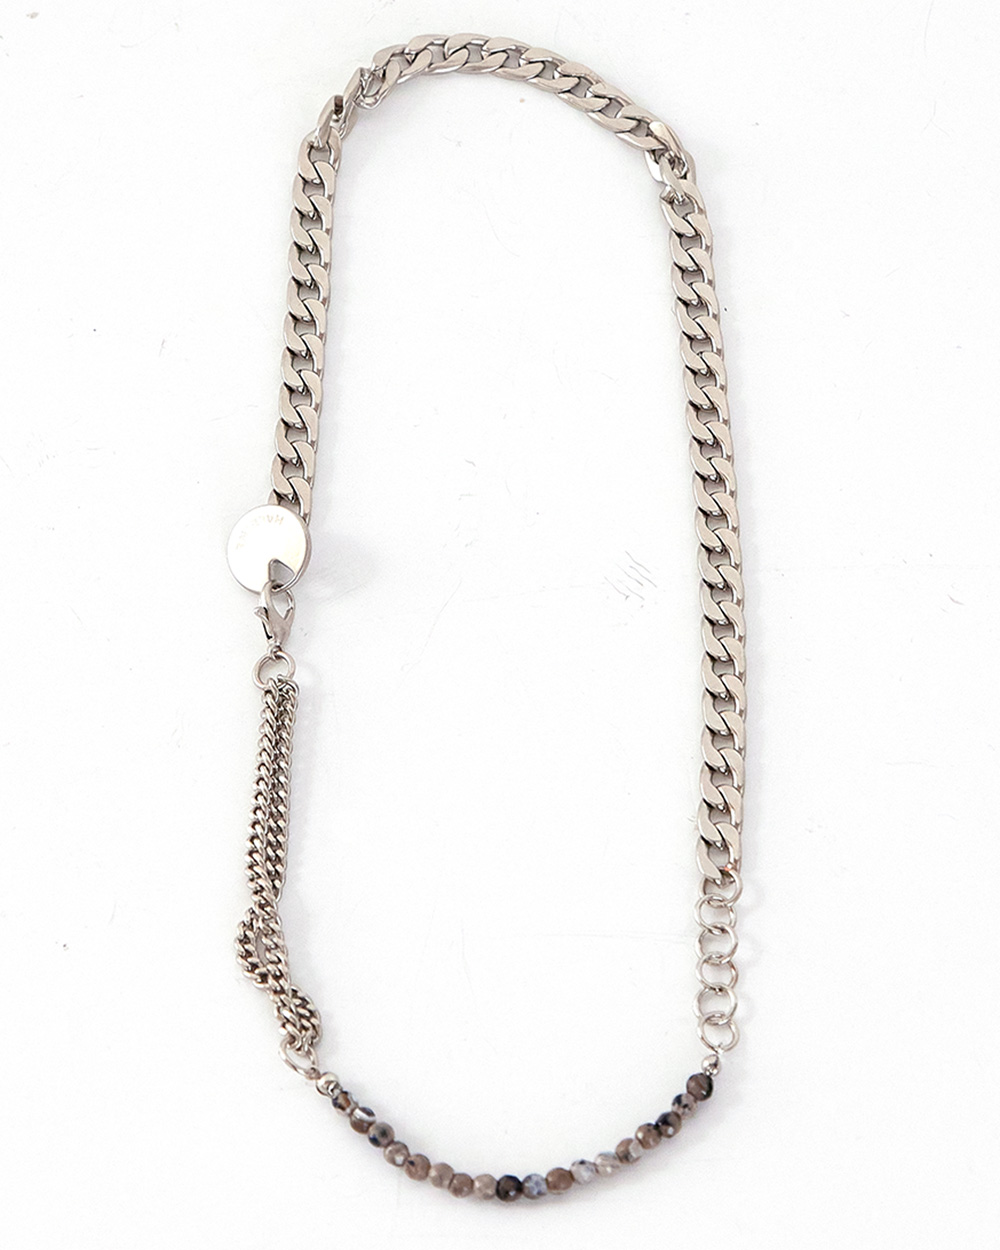 HALEINE알렌느 STONE metal mix necklace(NA009)